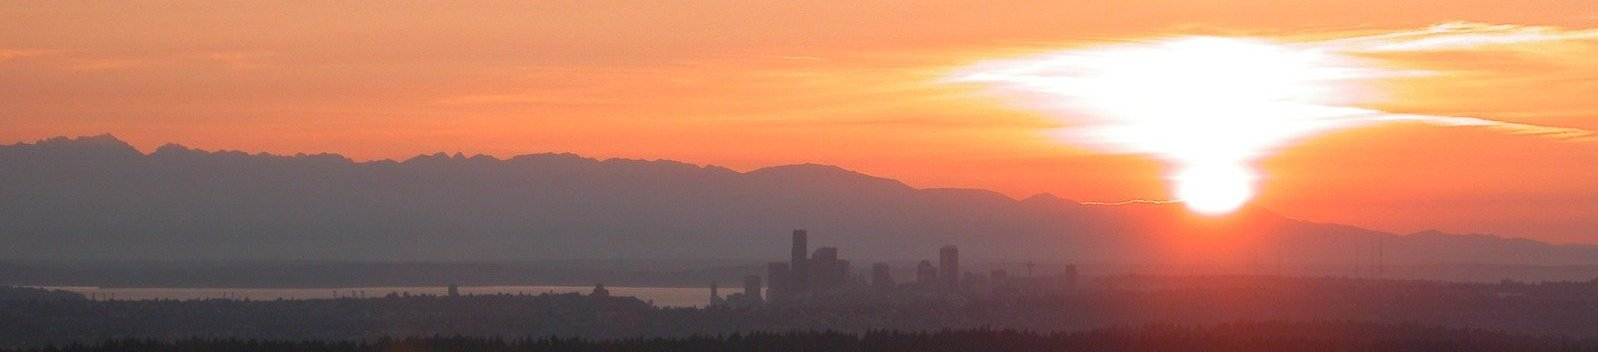 Western Washington sunset with hazy wildfire smoke